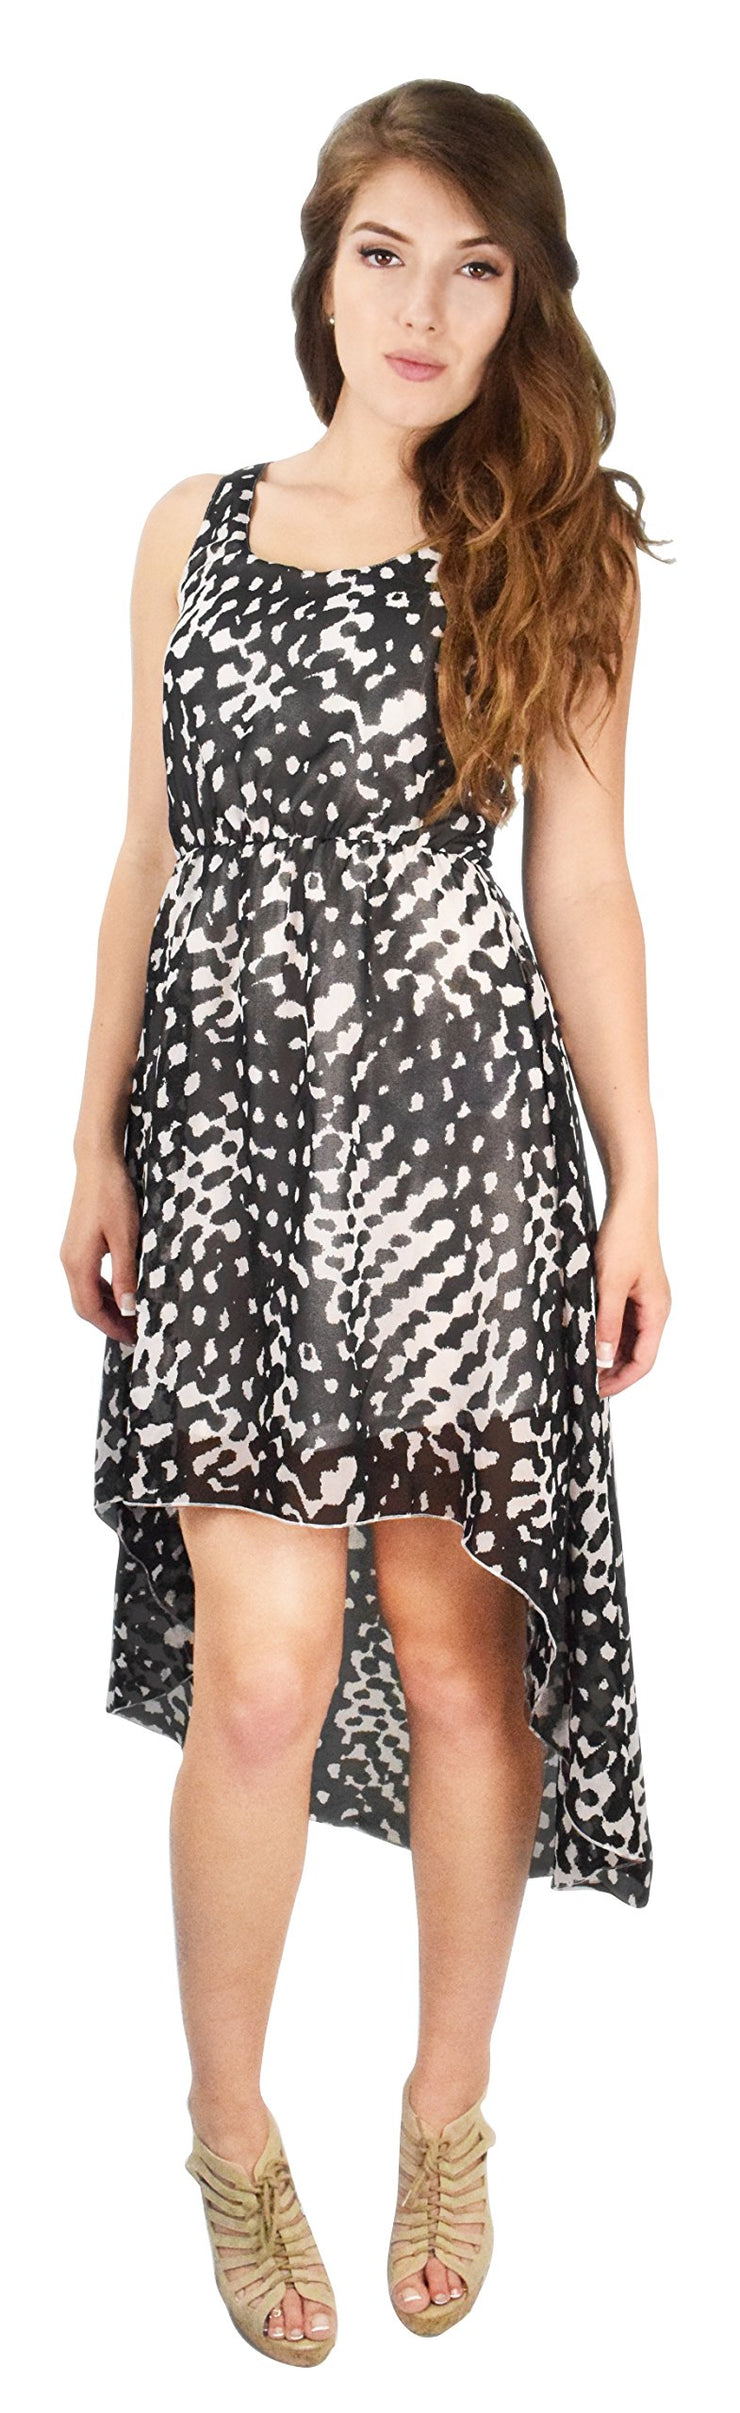 D7102-spotted-dress-BLACK-MEDIUM-F